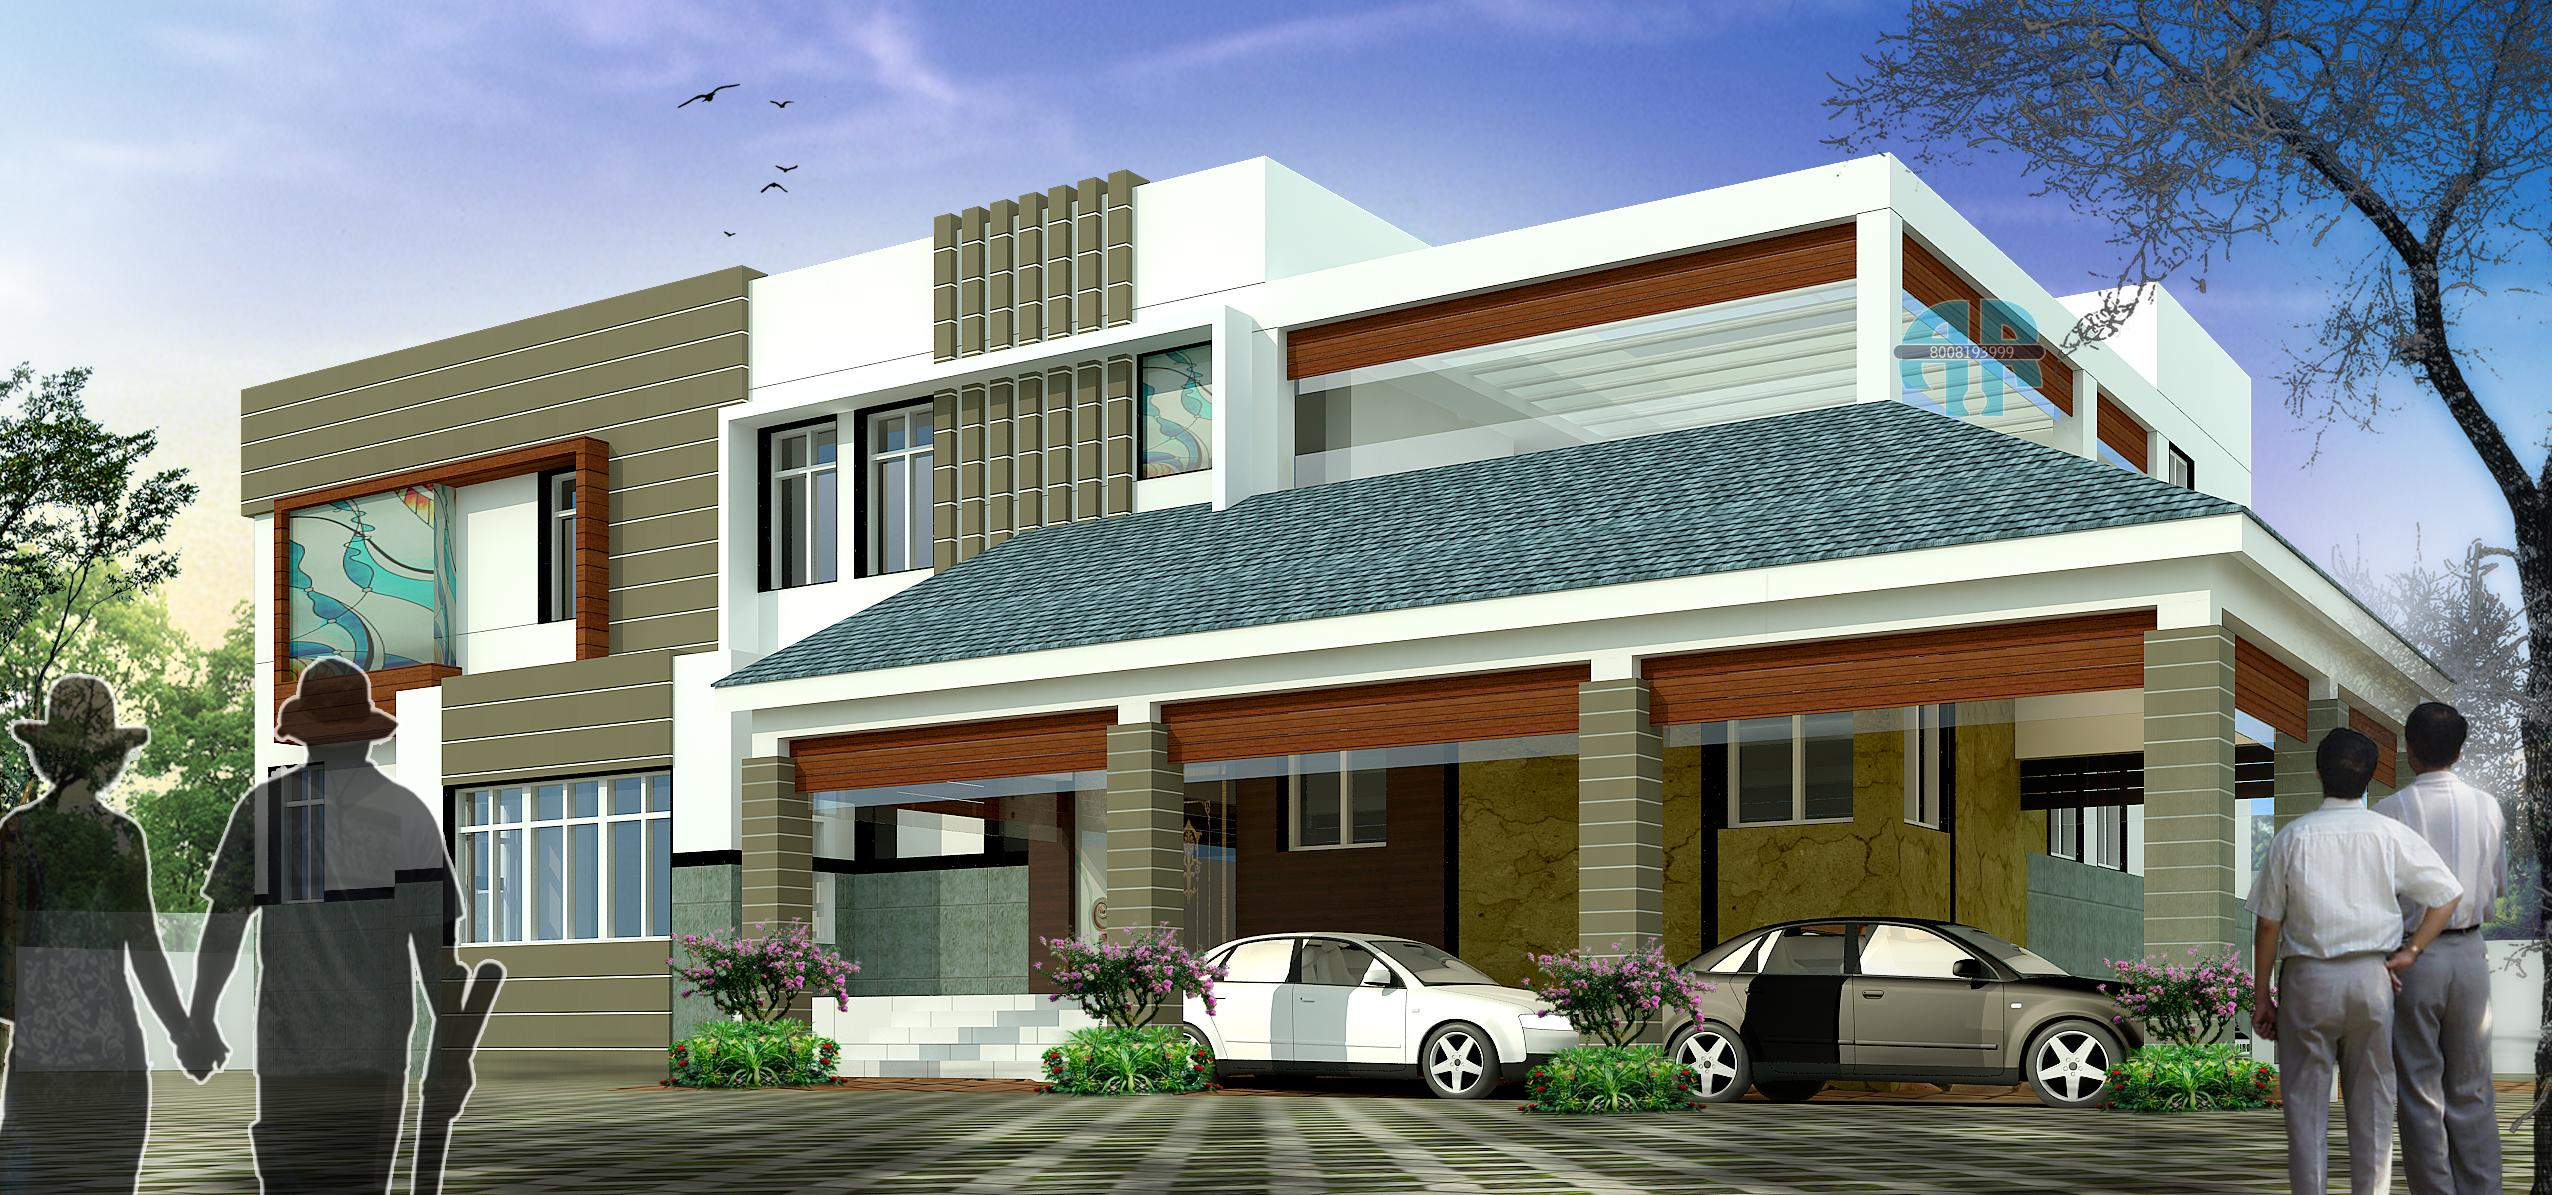 AR CONCEPTS Vitta Ramesh Residential Exterior Image B